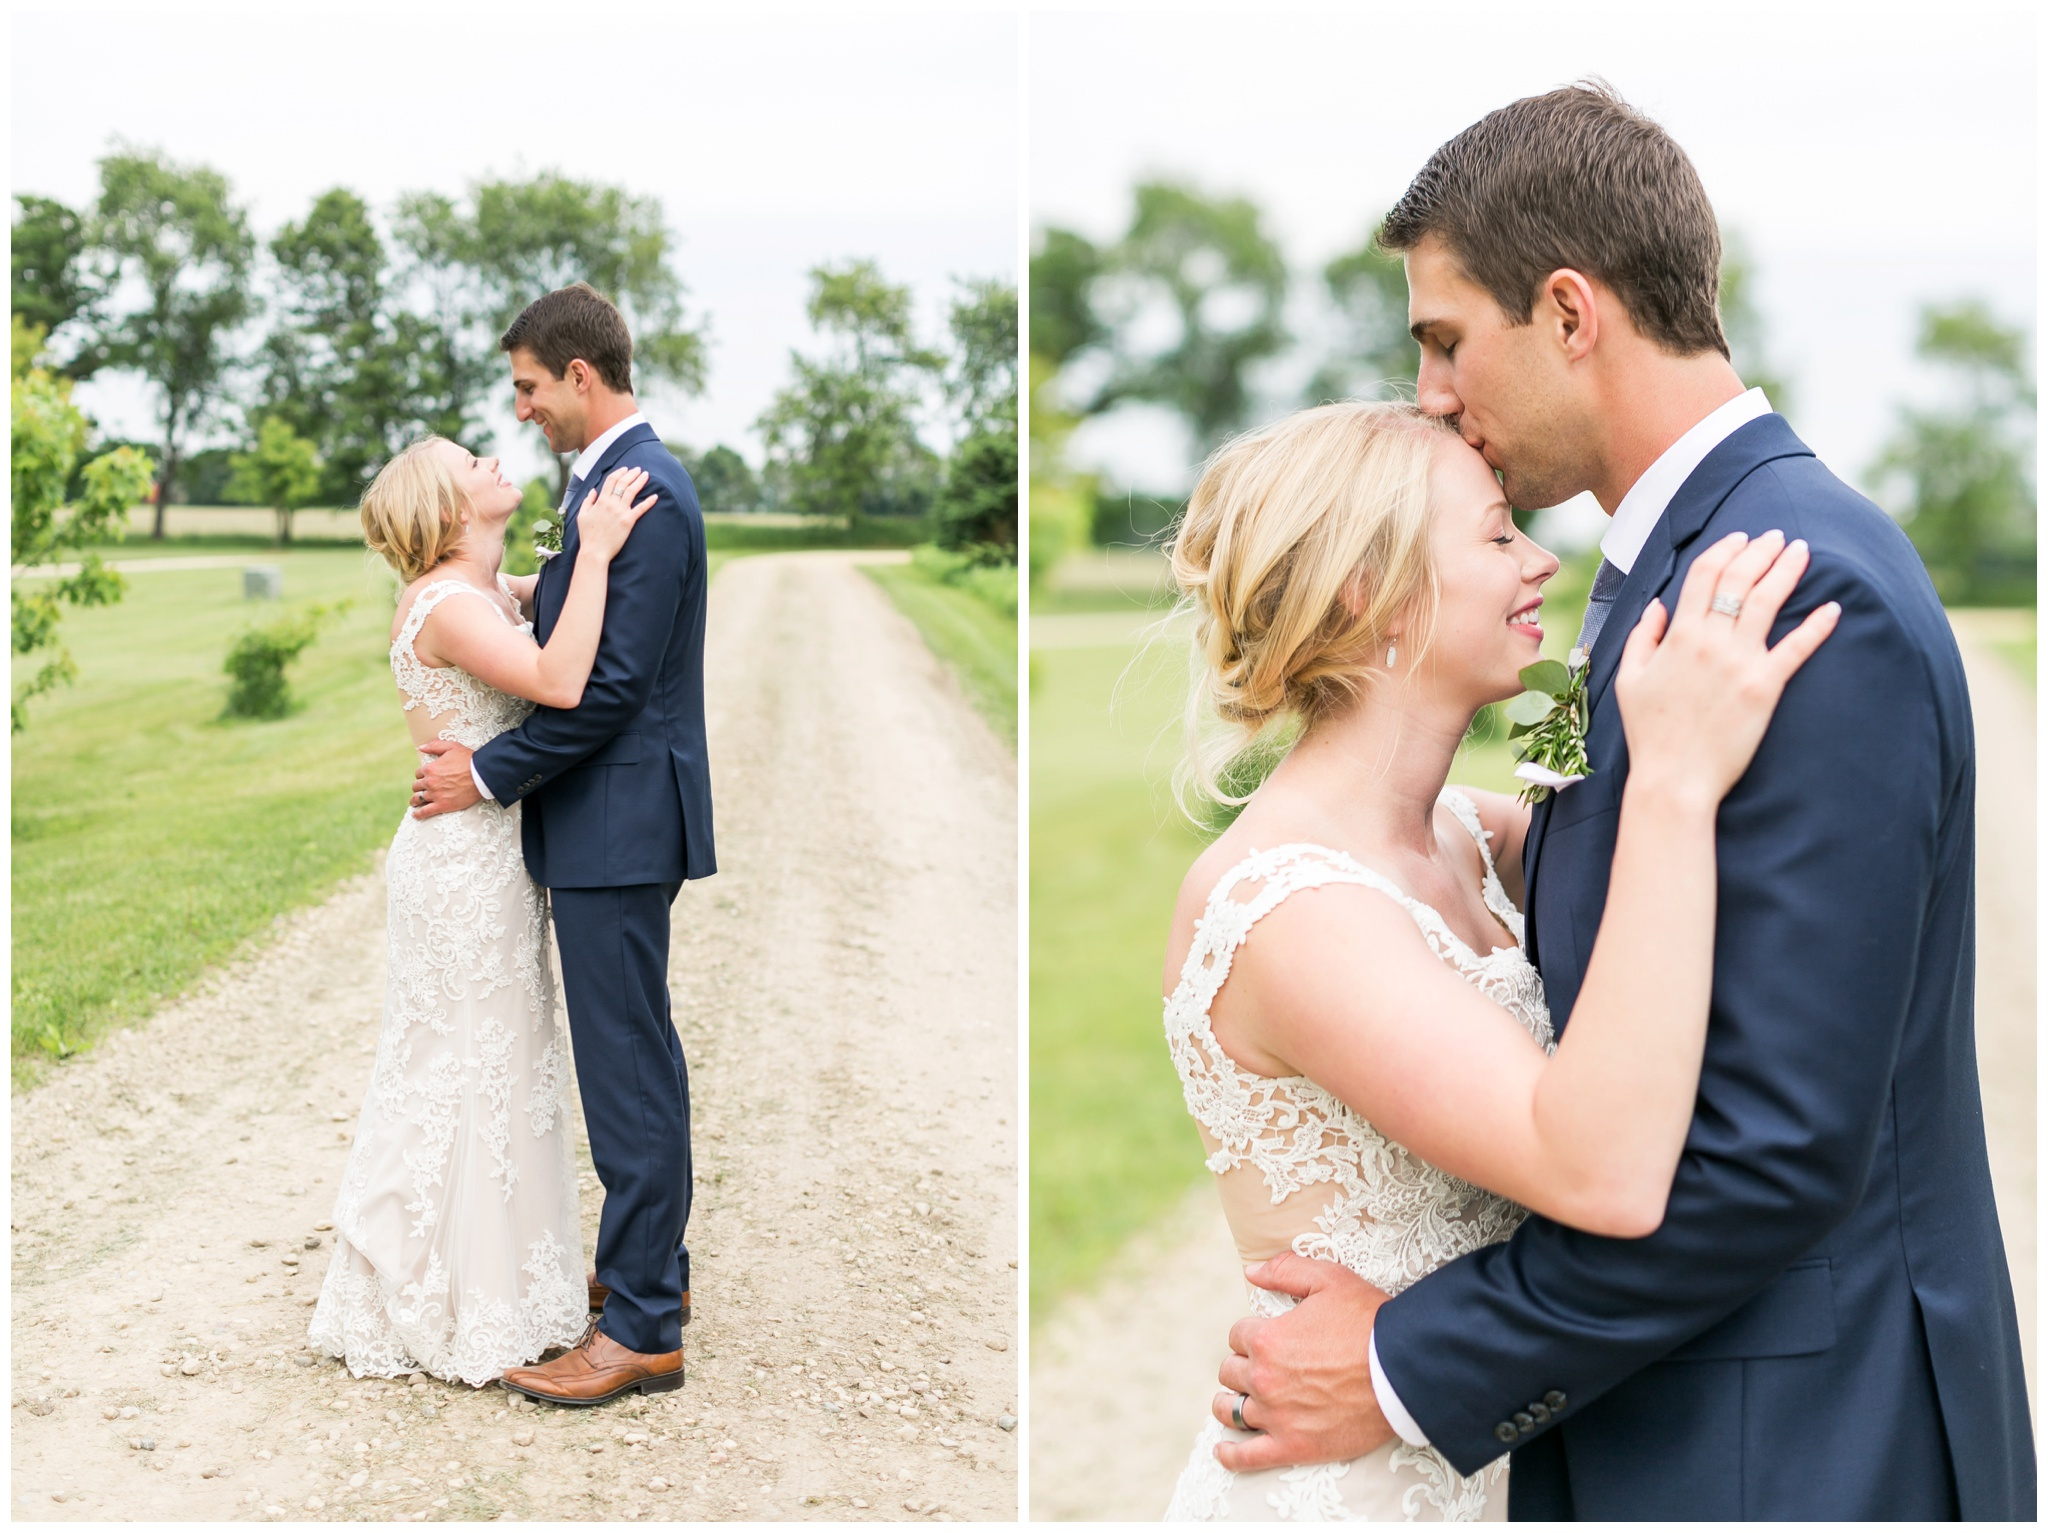 private_estate_wedding_stoughton_wisconsin_wedding_caynay_photo_3886.jpg